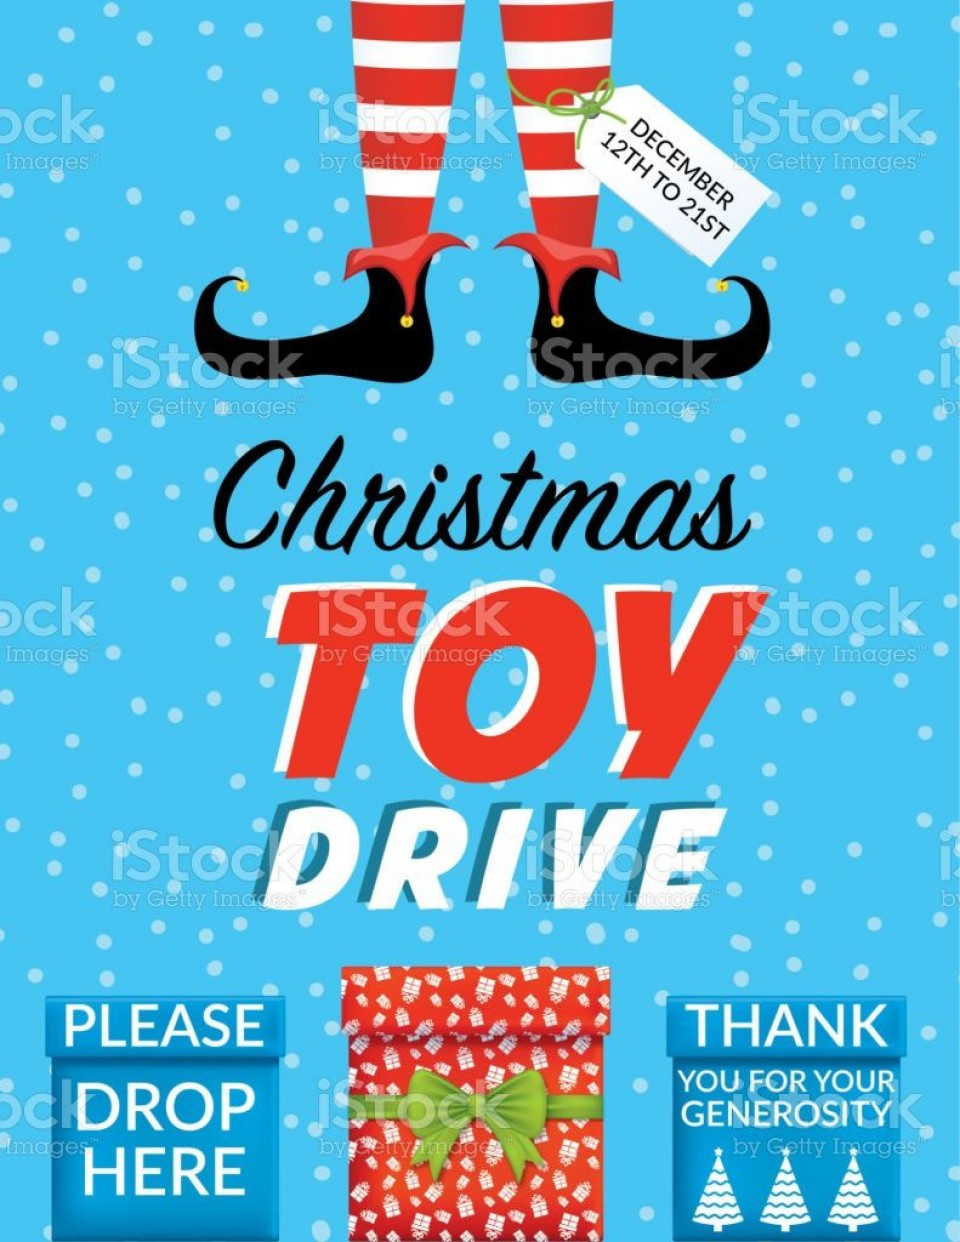 008 Imposing Toy Drive Flyer Template Free Inspiration  Download Christma960